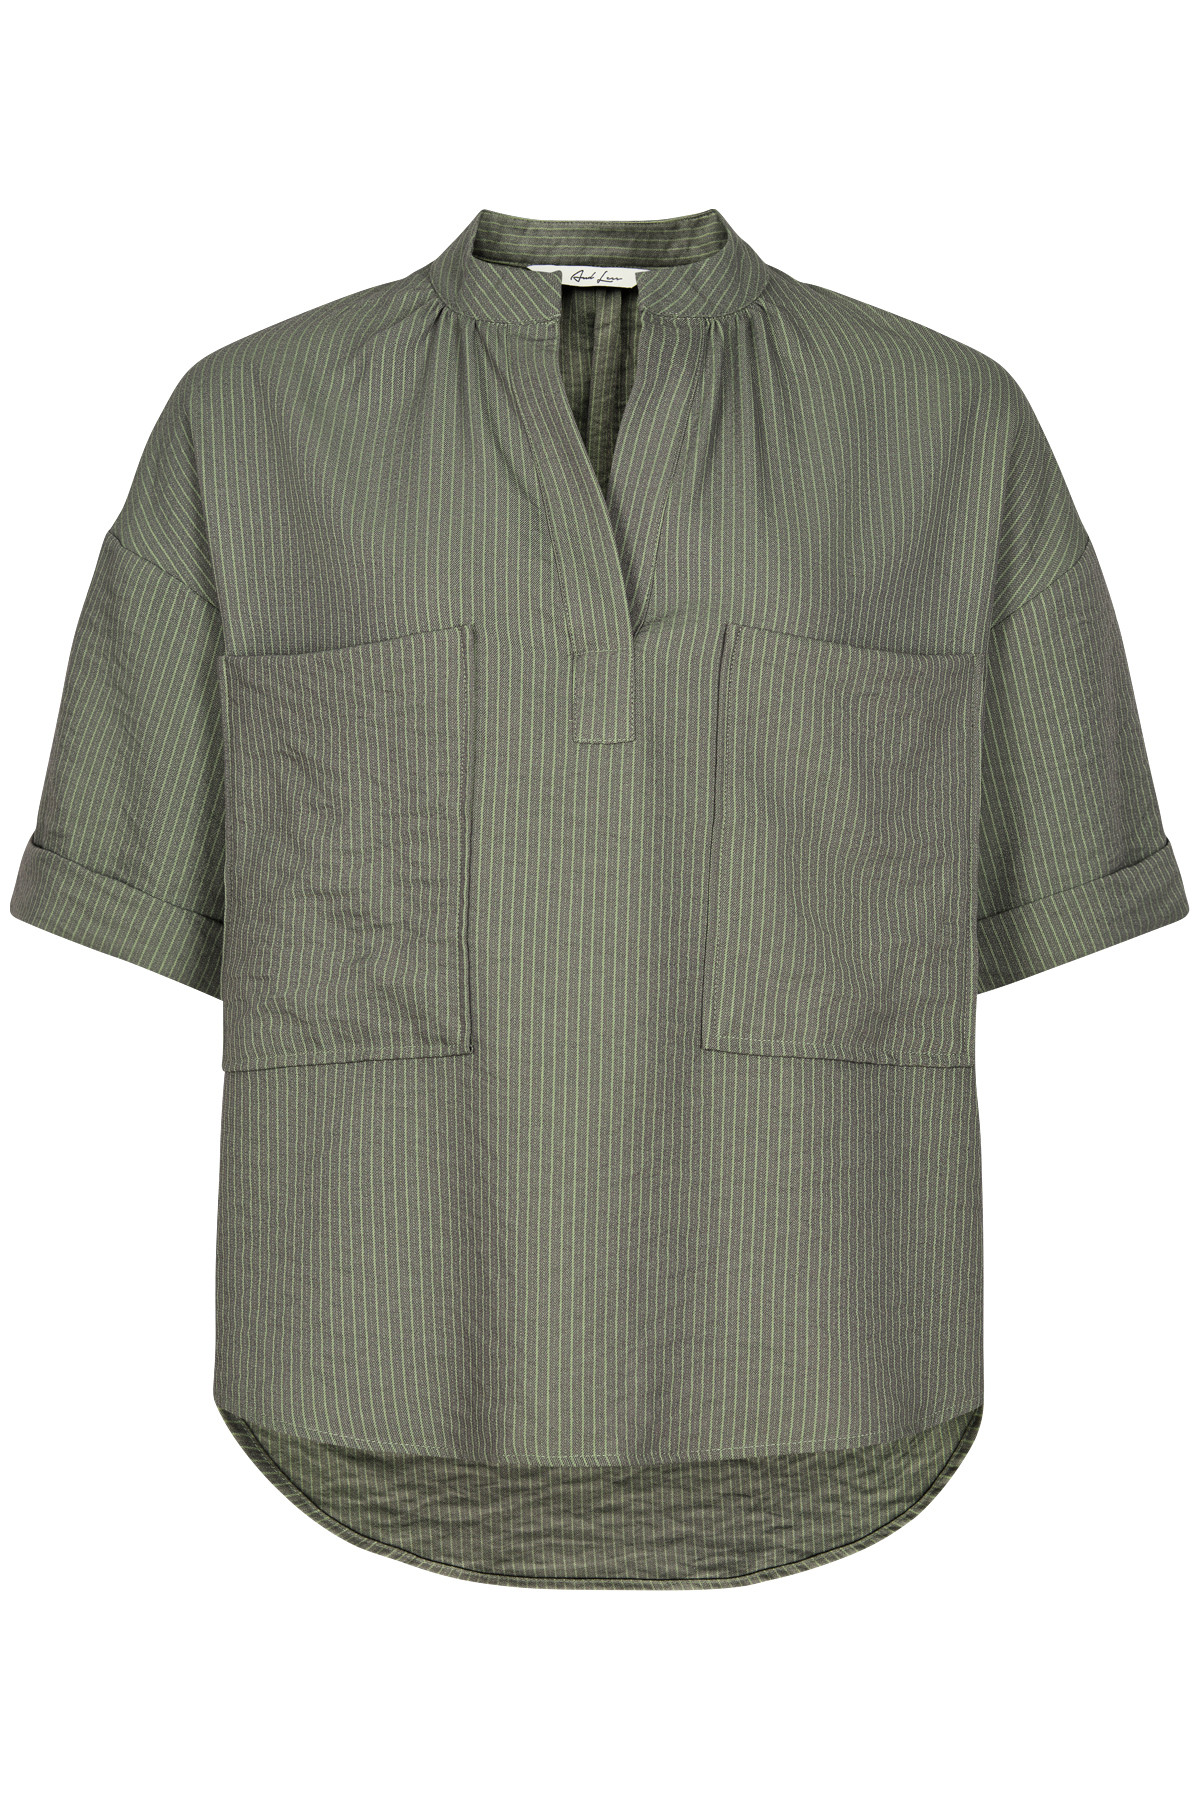 Image of   AND LESS ORIBELLA BLUSE 5219017 (Castor Green, 42)